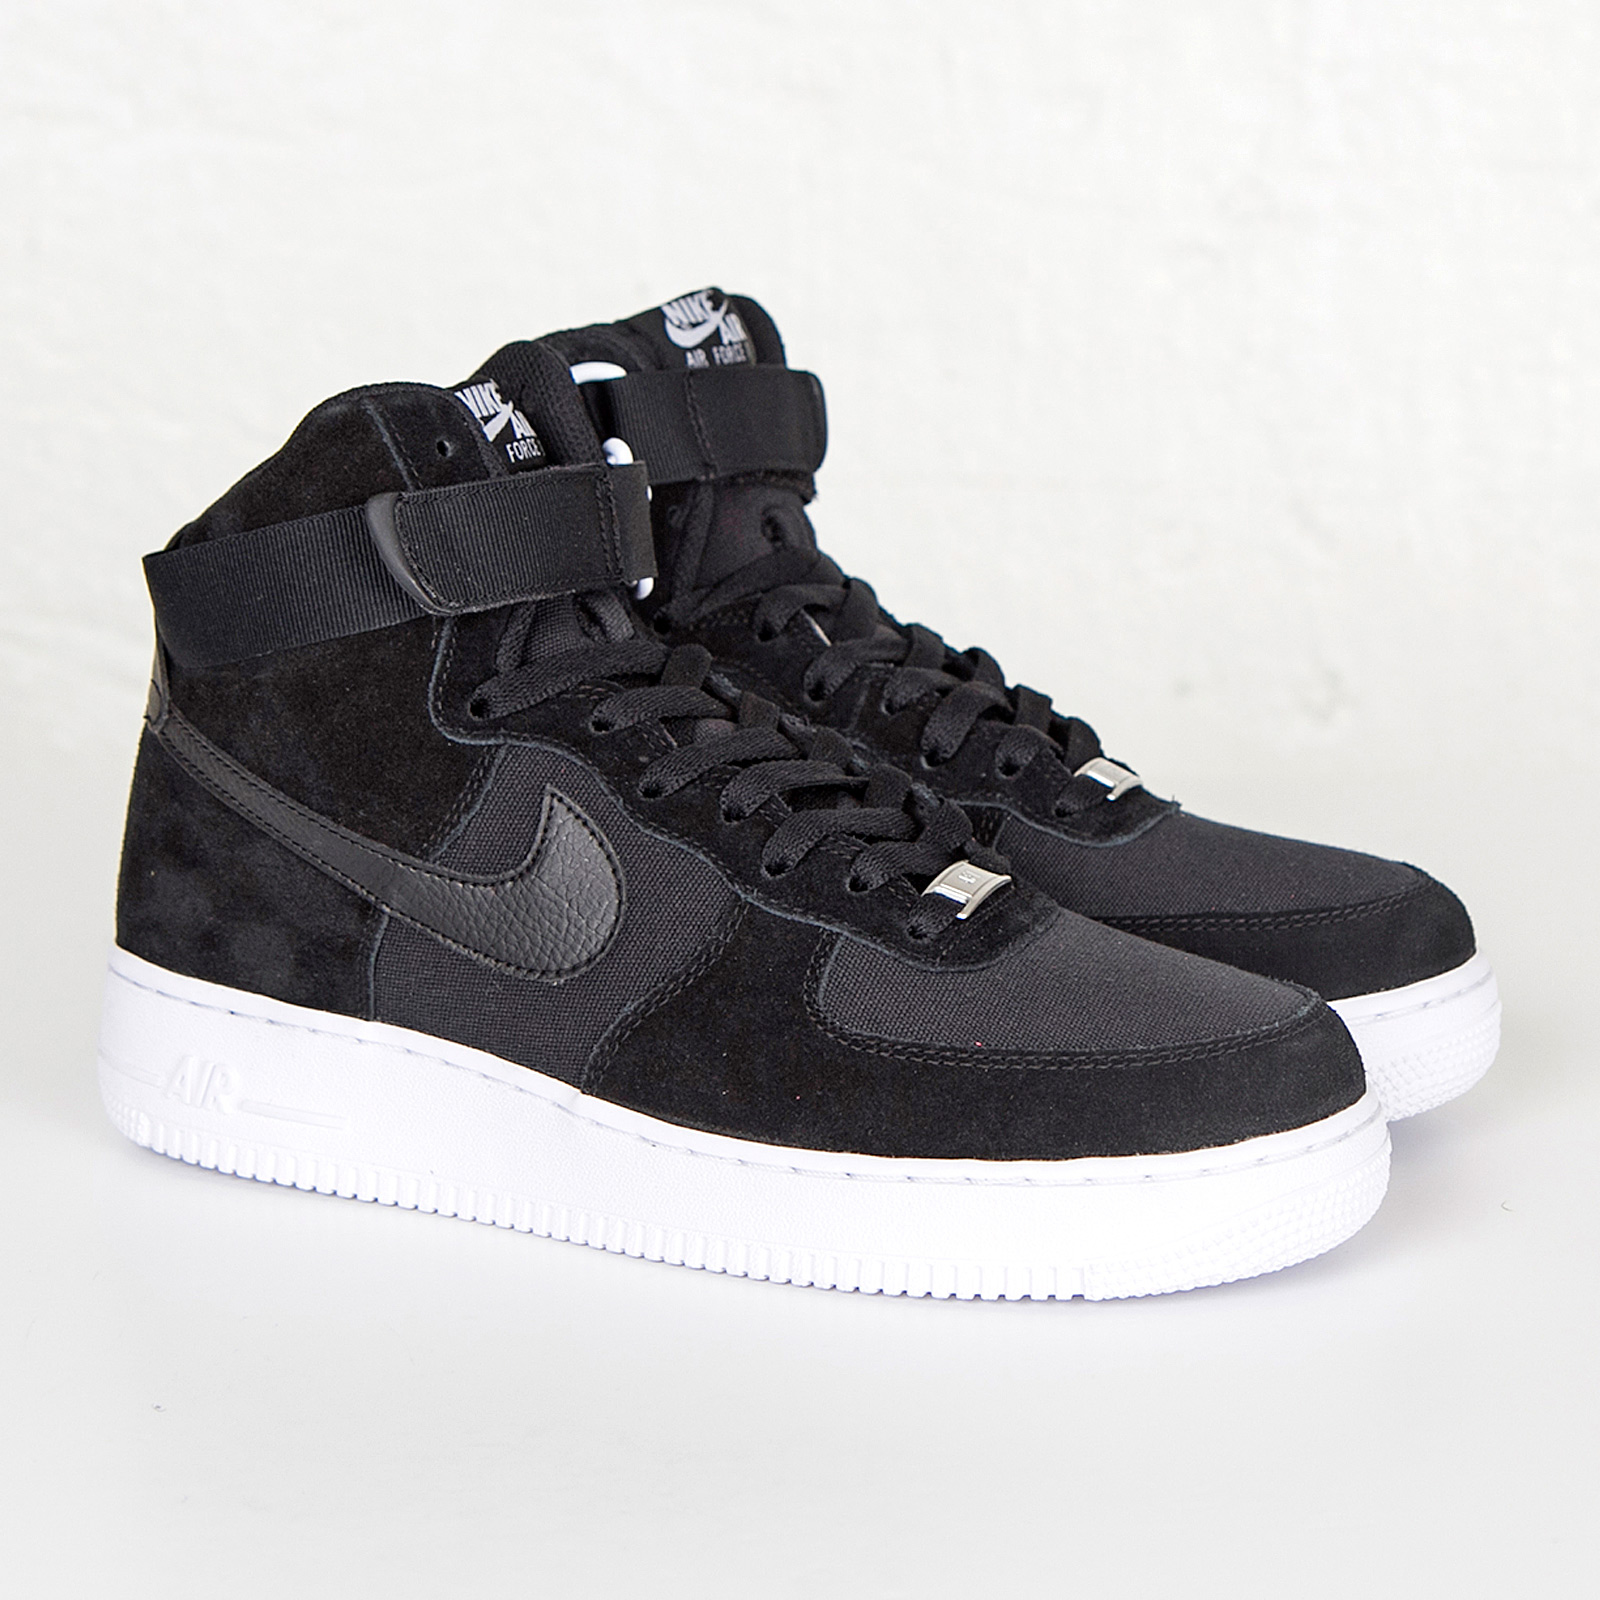 promo code b1aae e4bf5 Nike Air Force 1 High 07